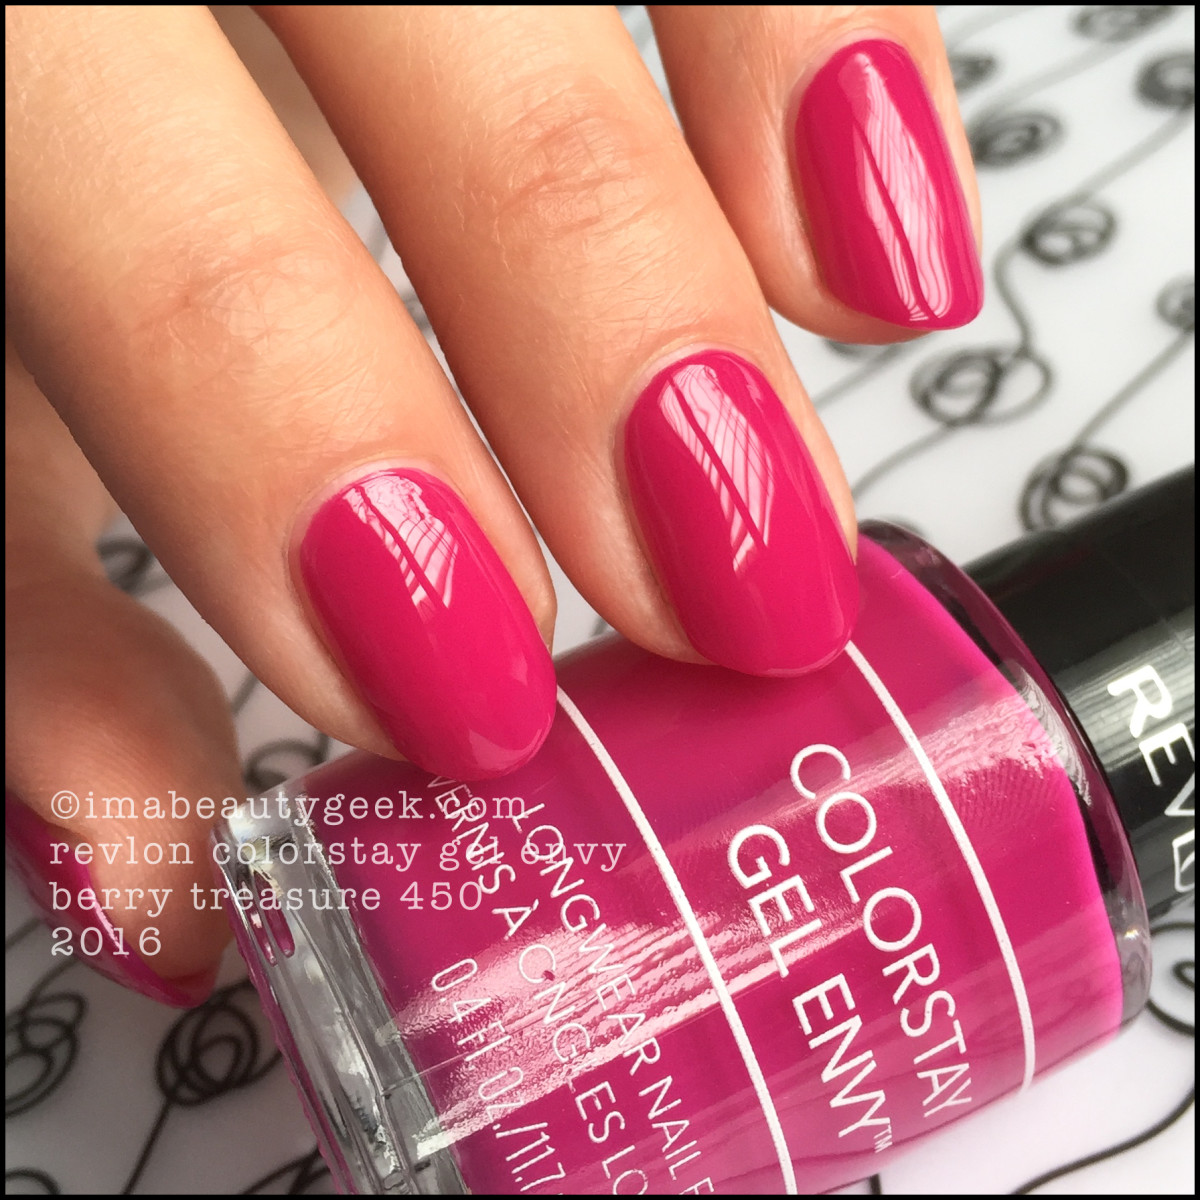 Revlon Gel Envy Berry Treasure 450_Revlon Colorstay GelEnvy 2016